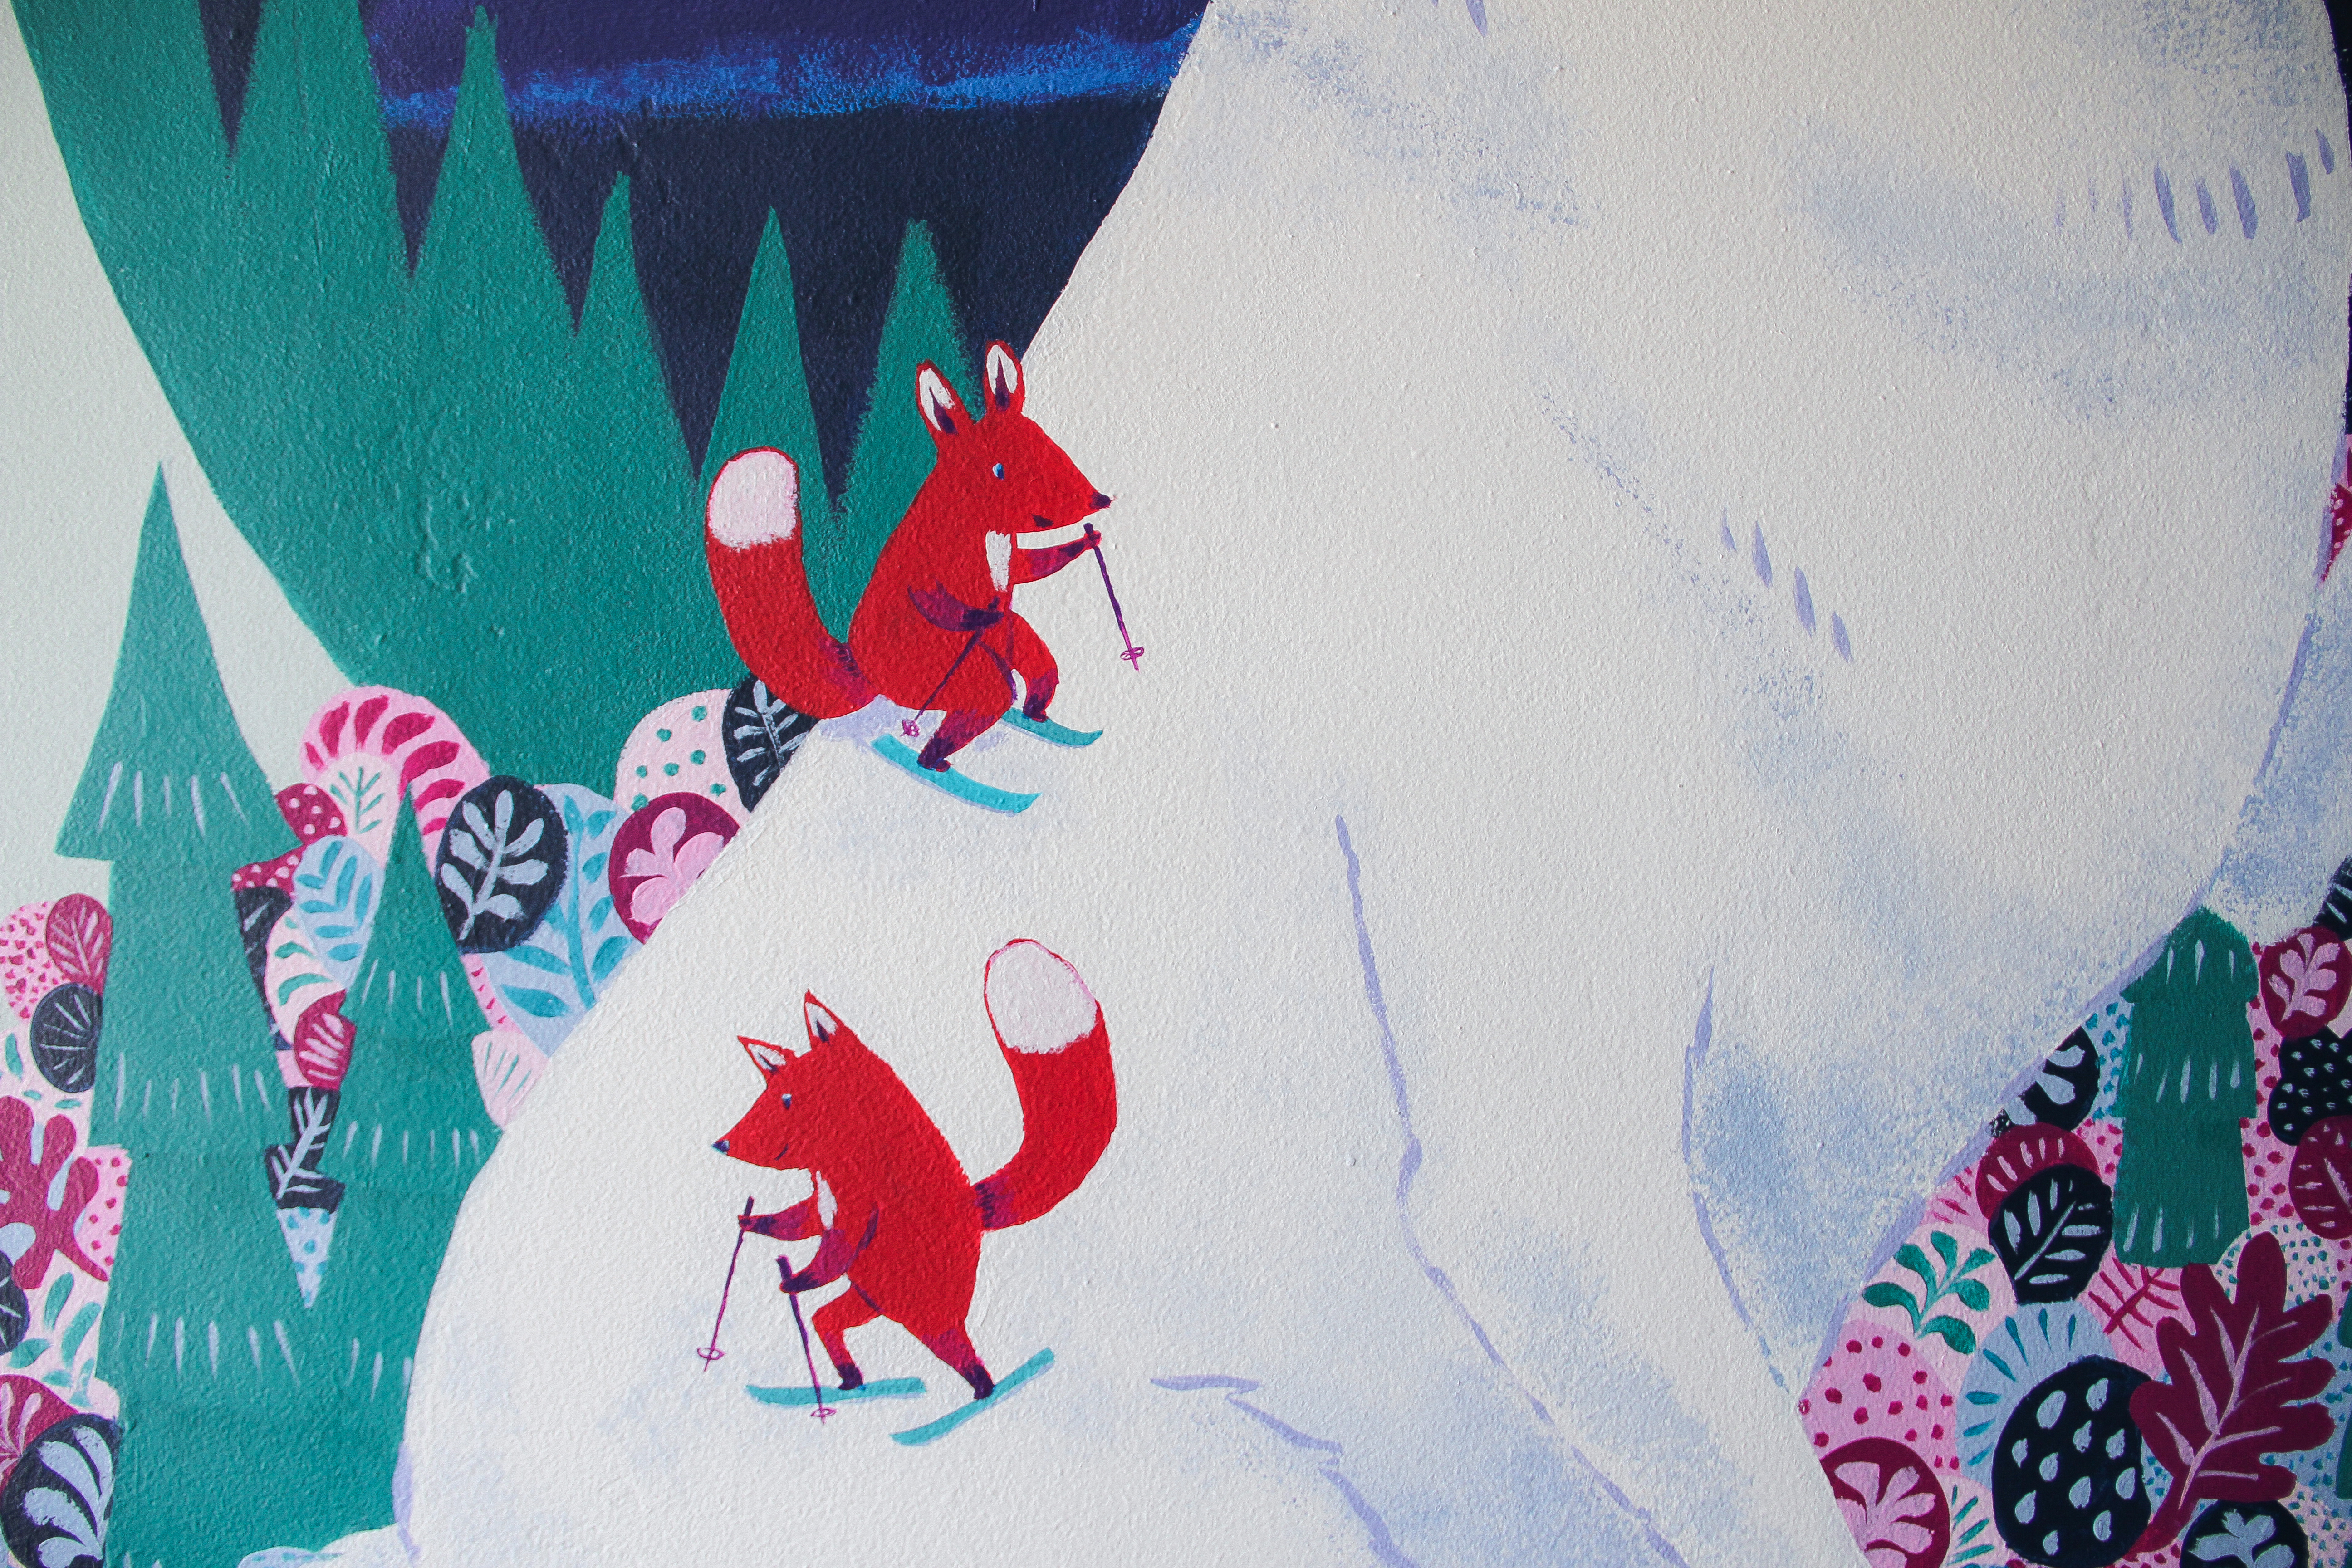 mural detail: foxes skiing down the wolf's back